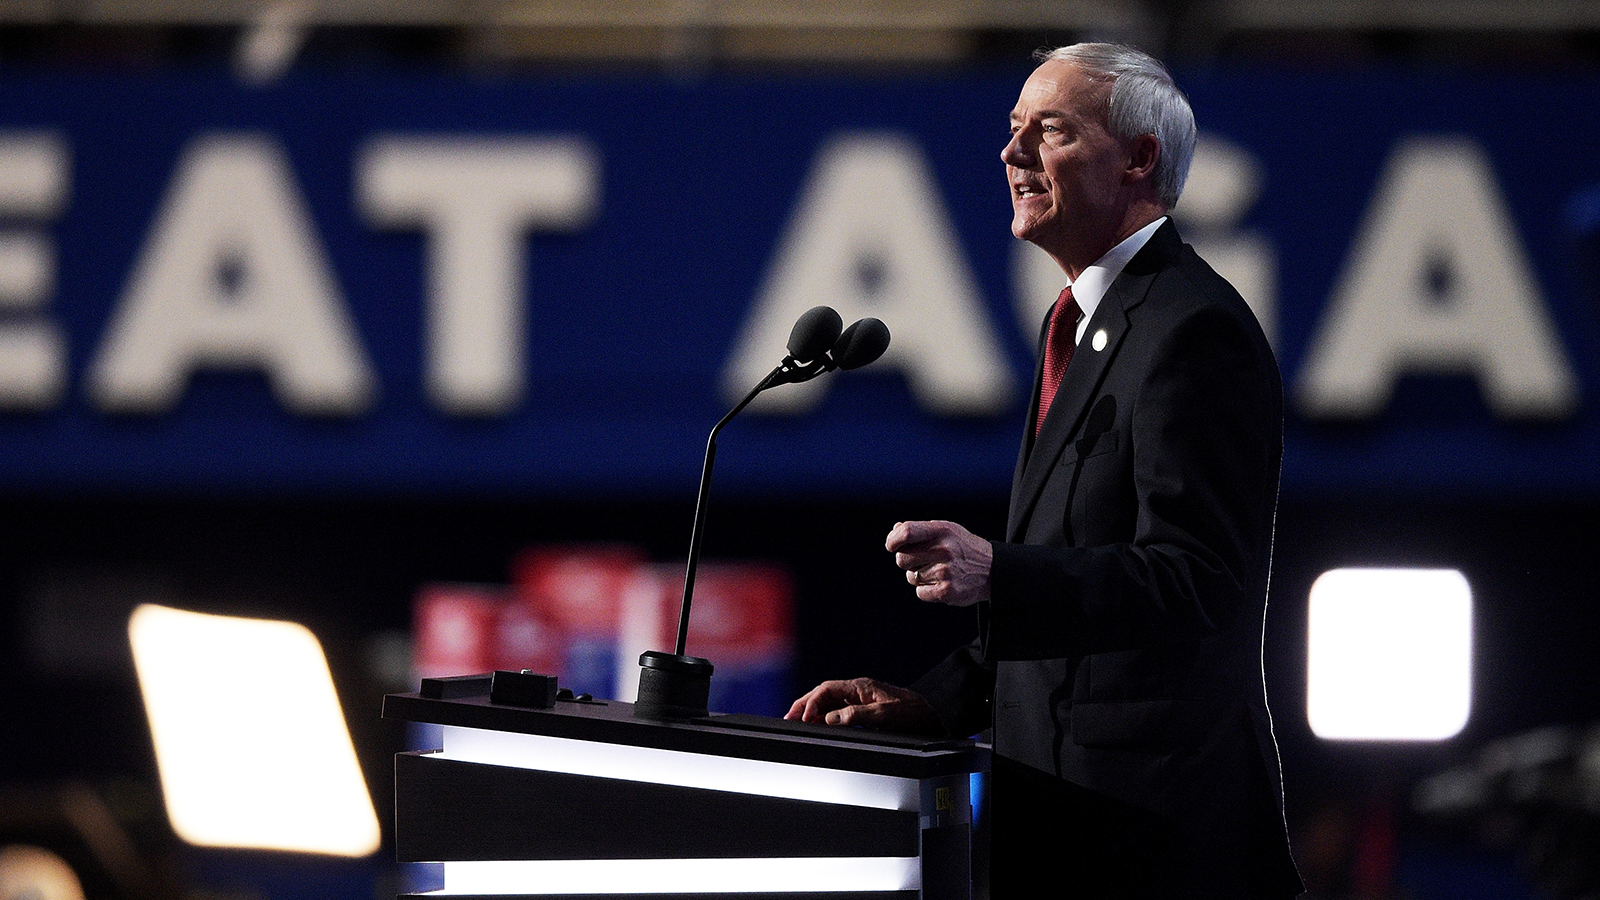 Arkansas Gov. Asa Hutchinson delivers a speech on the second day of the Republican National Convention on July 19, 2016 at the Quicken Loans Arena in Cleveland, Ohio.